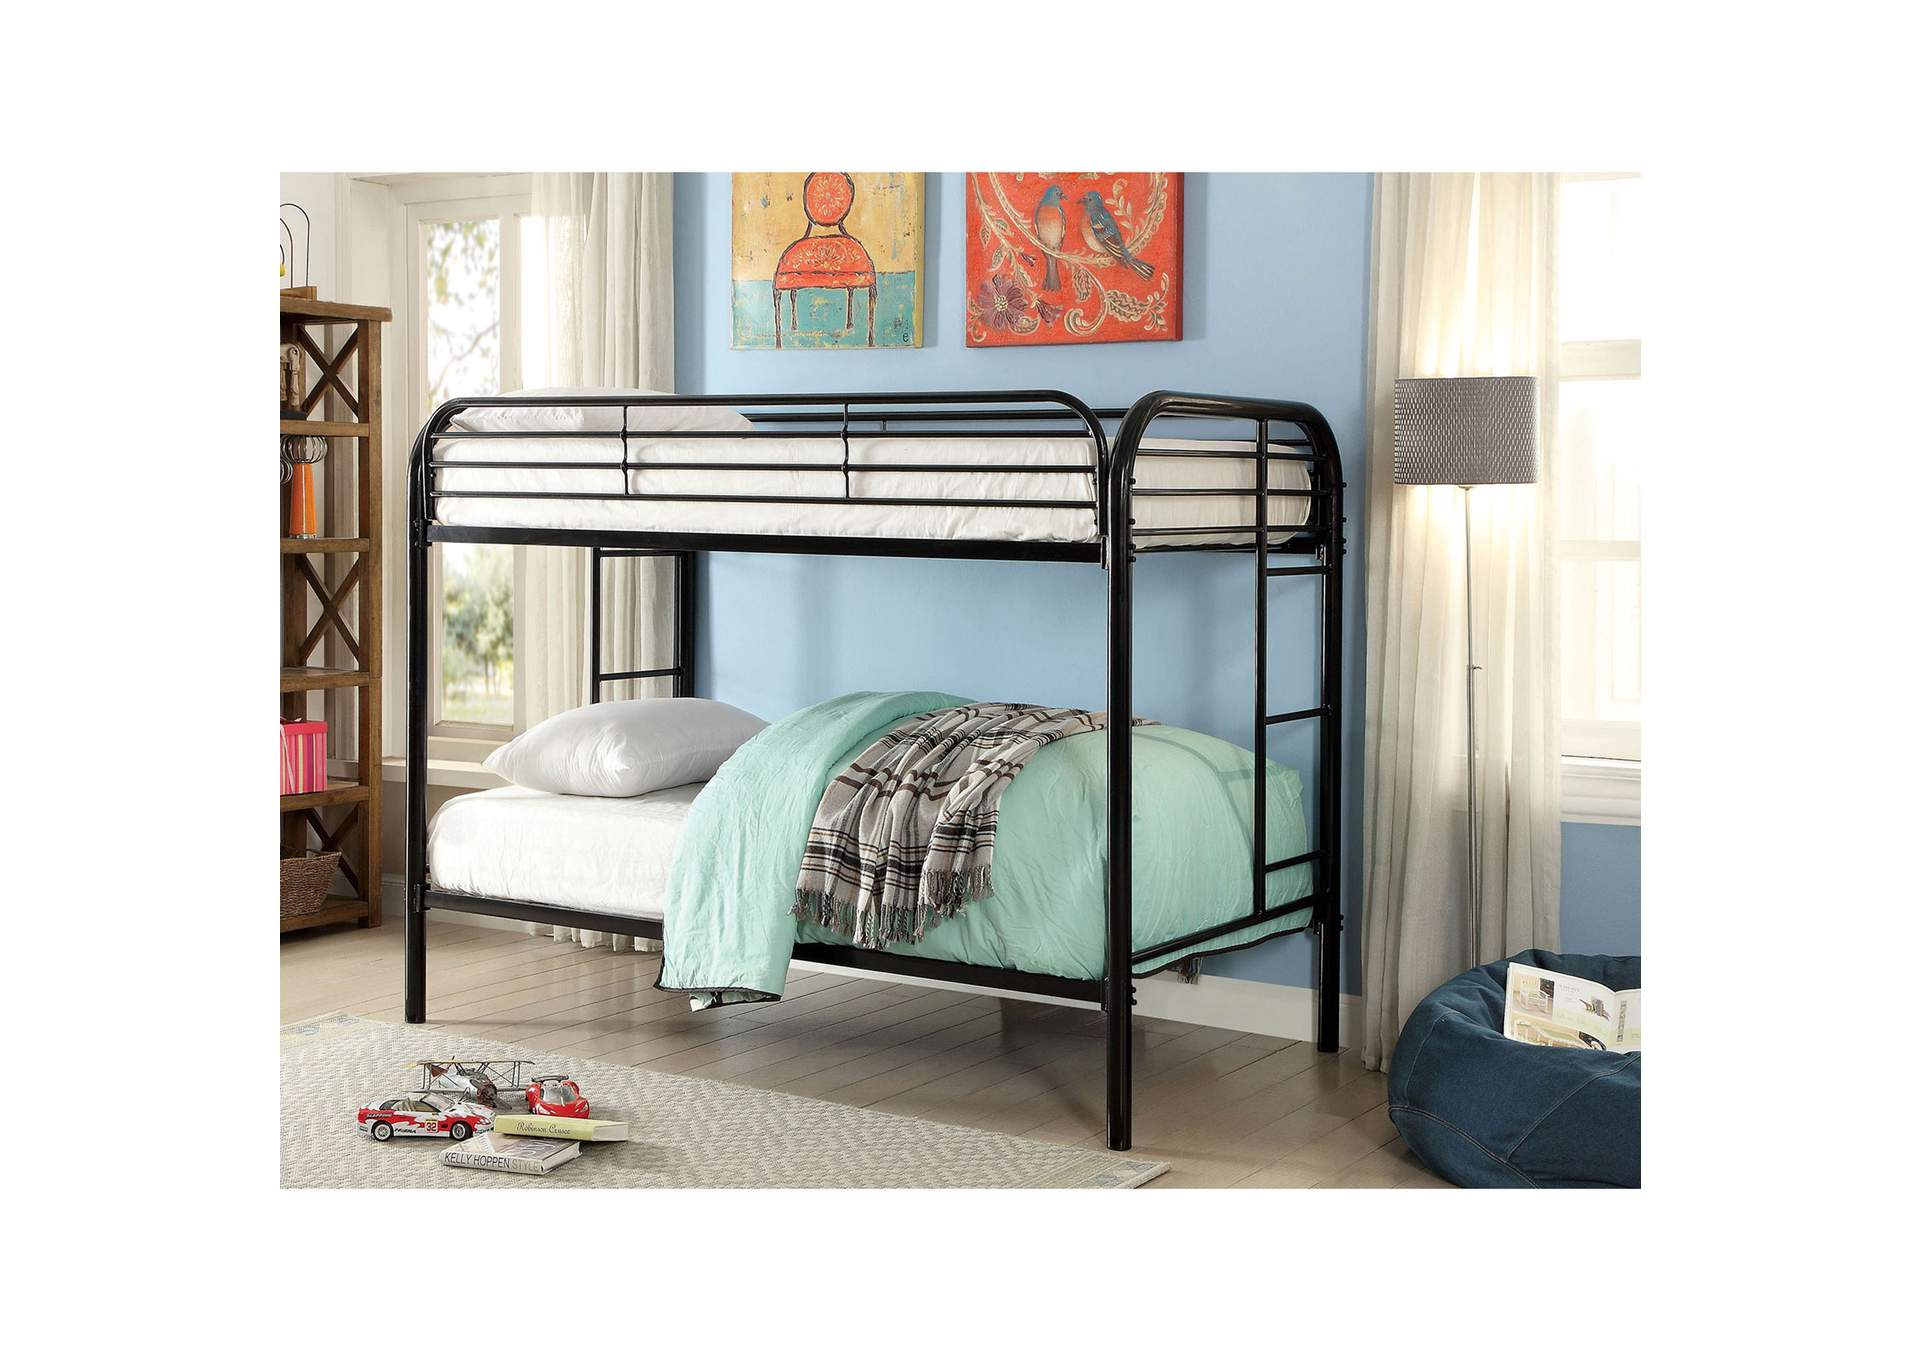 Opal Black Twin/Twin Metal Bunk Bed,Furniture of America